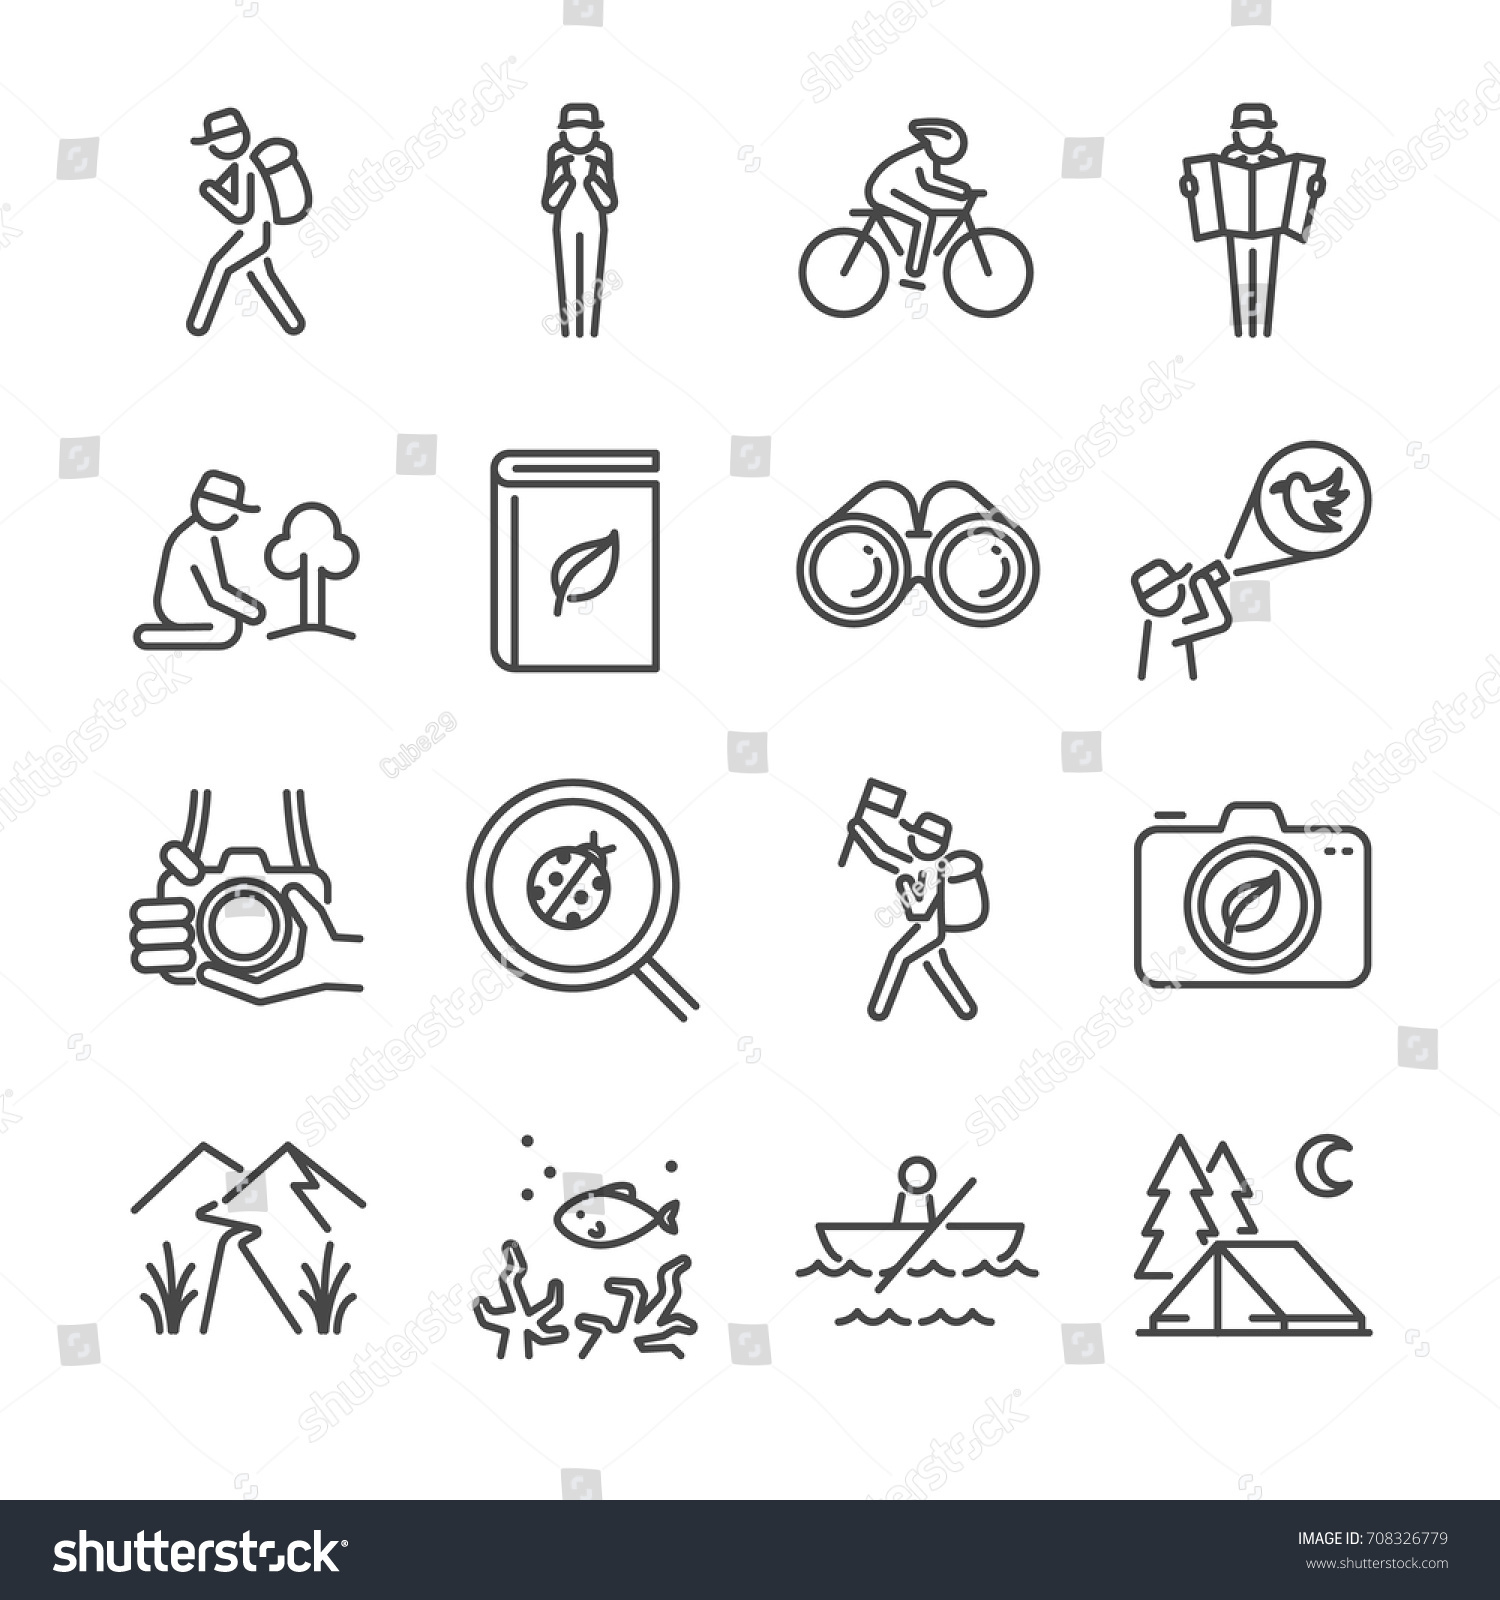 Eco tourism line icon set. Included the icons as traveler, camera, map, tourist, view, bird watching, camping and more.